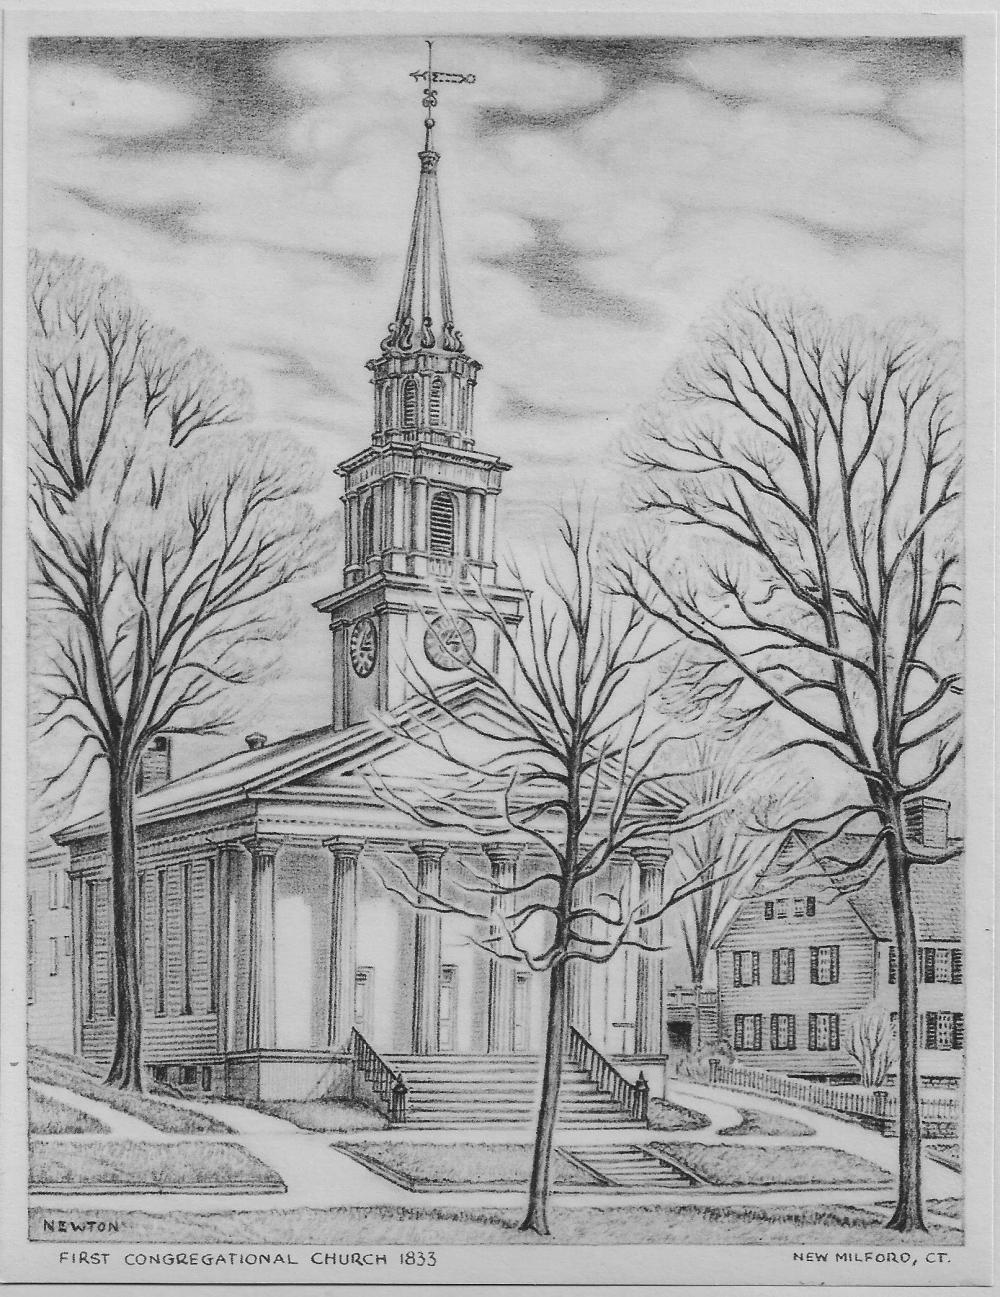 The New Milford Historical Society & Museum would like to borrow artifacts from the community related to the First Congregational Church in New Milford.  The museum will be hosting a commemorative exhibit entitled; First Congregational Church: Celebrating 300 Years of Faithful Service in New Milford, 1716-2016 this fall to celebrate their 300th anniversary. The museum is seeking letters, books, objects, art, furniture or other objects related to the long history of the church.  The museum already has a number of objects in their permanent collection pertaining to the Congregational Church such as such as a portion of the pulpit from the 1754 Meetinghouse and original sermons from Rev. Nathaniel Taylor from 1750. Both the Church and the museum would like to get the com munity involved with this special exhibit. The exhibit will run from October 1st through January 8, 2017. Please contact the Museum by September 12th if you would like to participate in the upcoming exhibit.